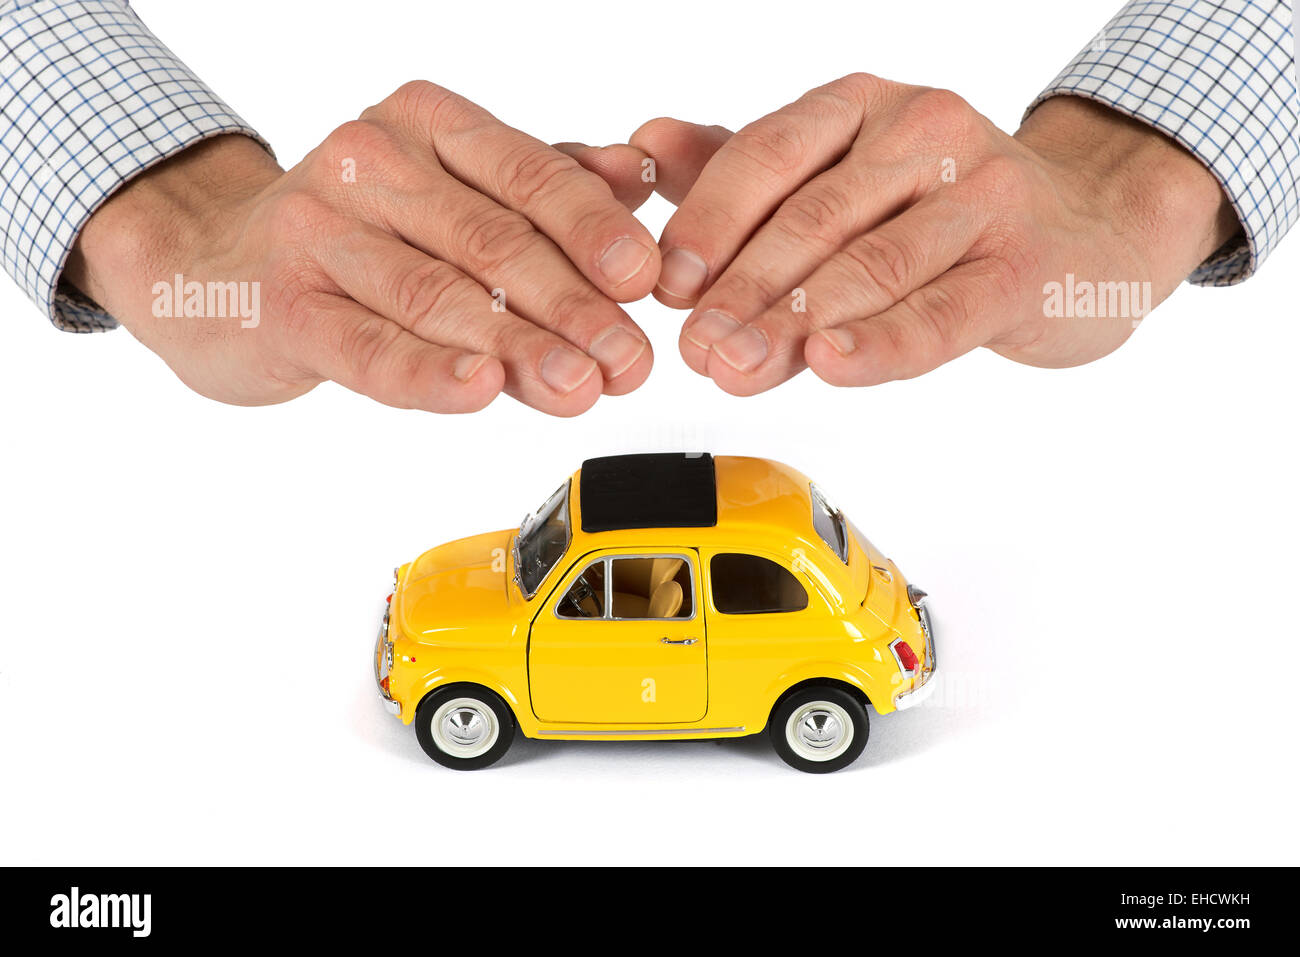 Adult Male Hands Providing Protective Cover Over Top of Yellow Toy Car, Insurance Concept Image - Stock Image